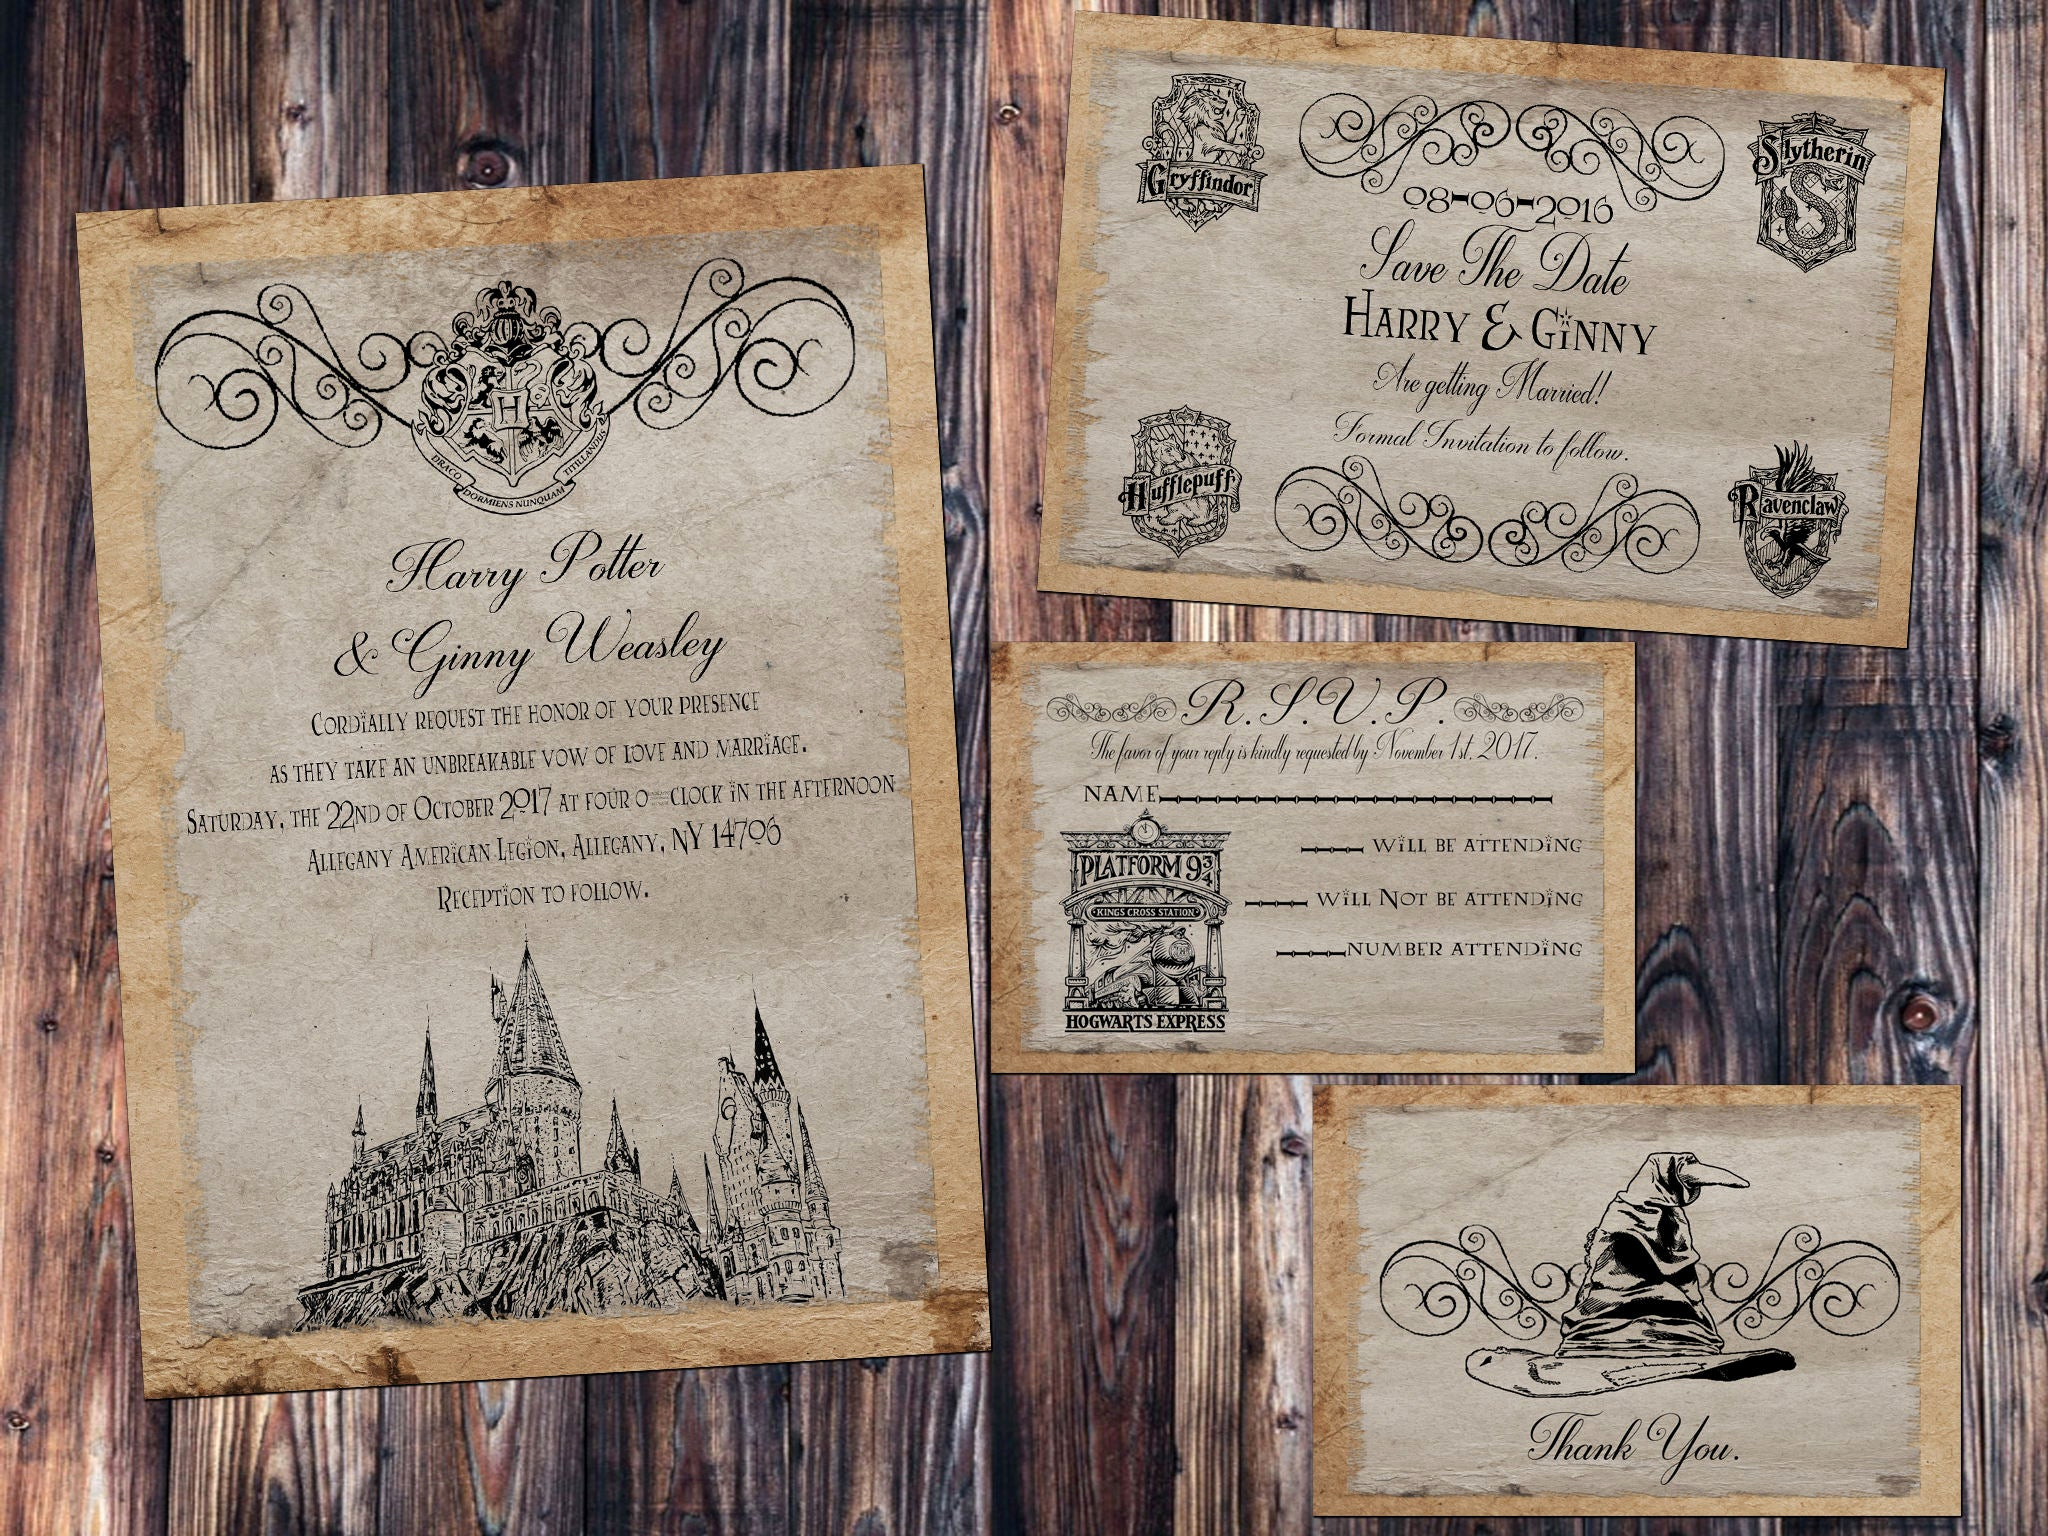 Harry Potter Invitation to Hogwarts Beautiful Hogwarts Parchment Wedding Invitation Save the Date Rsvp